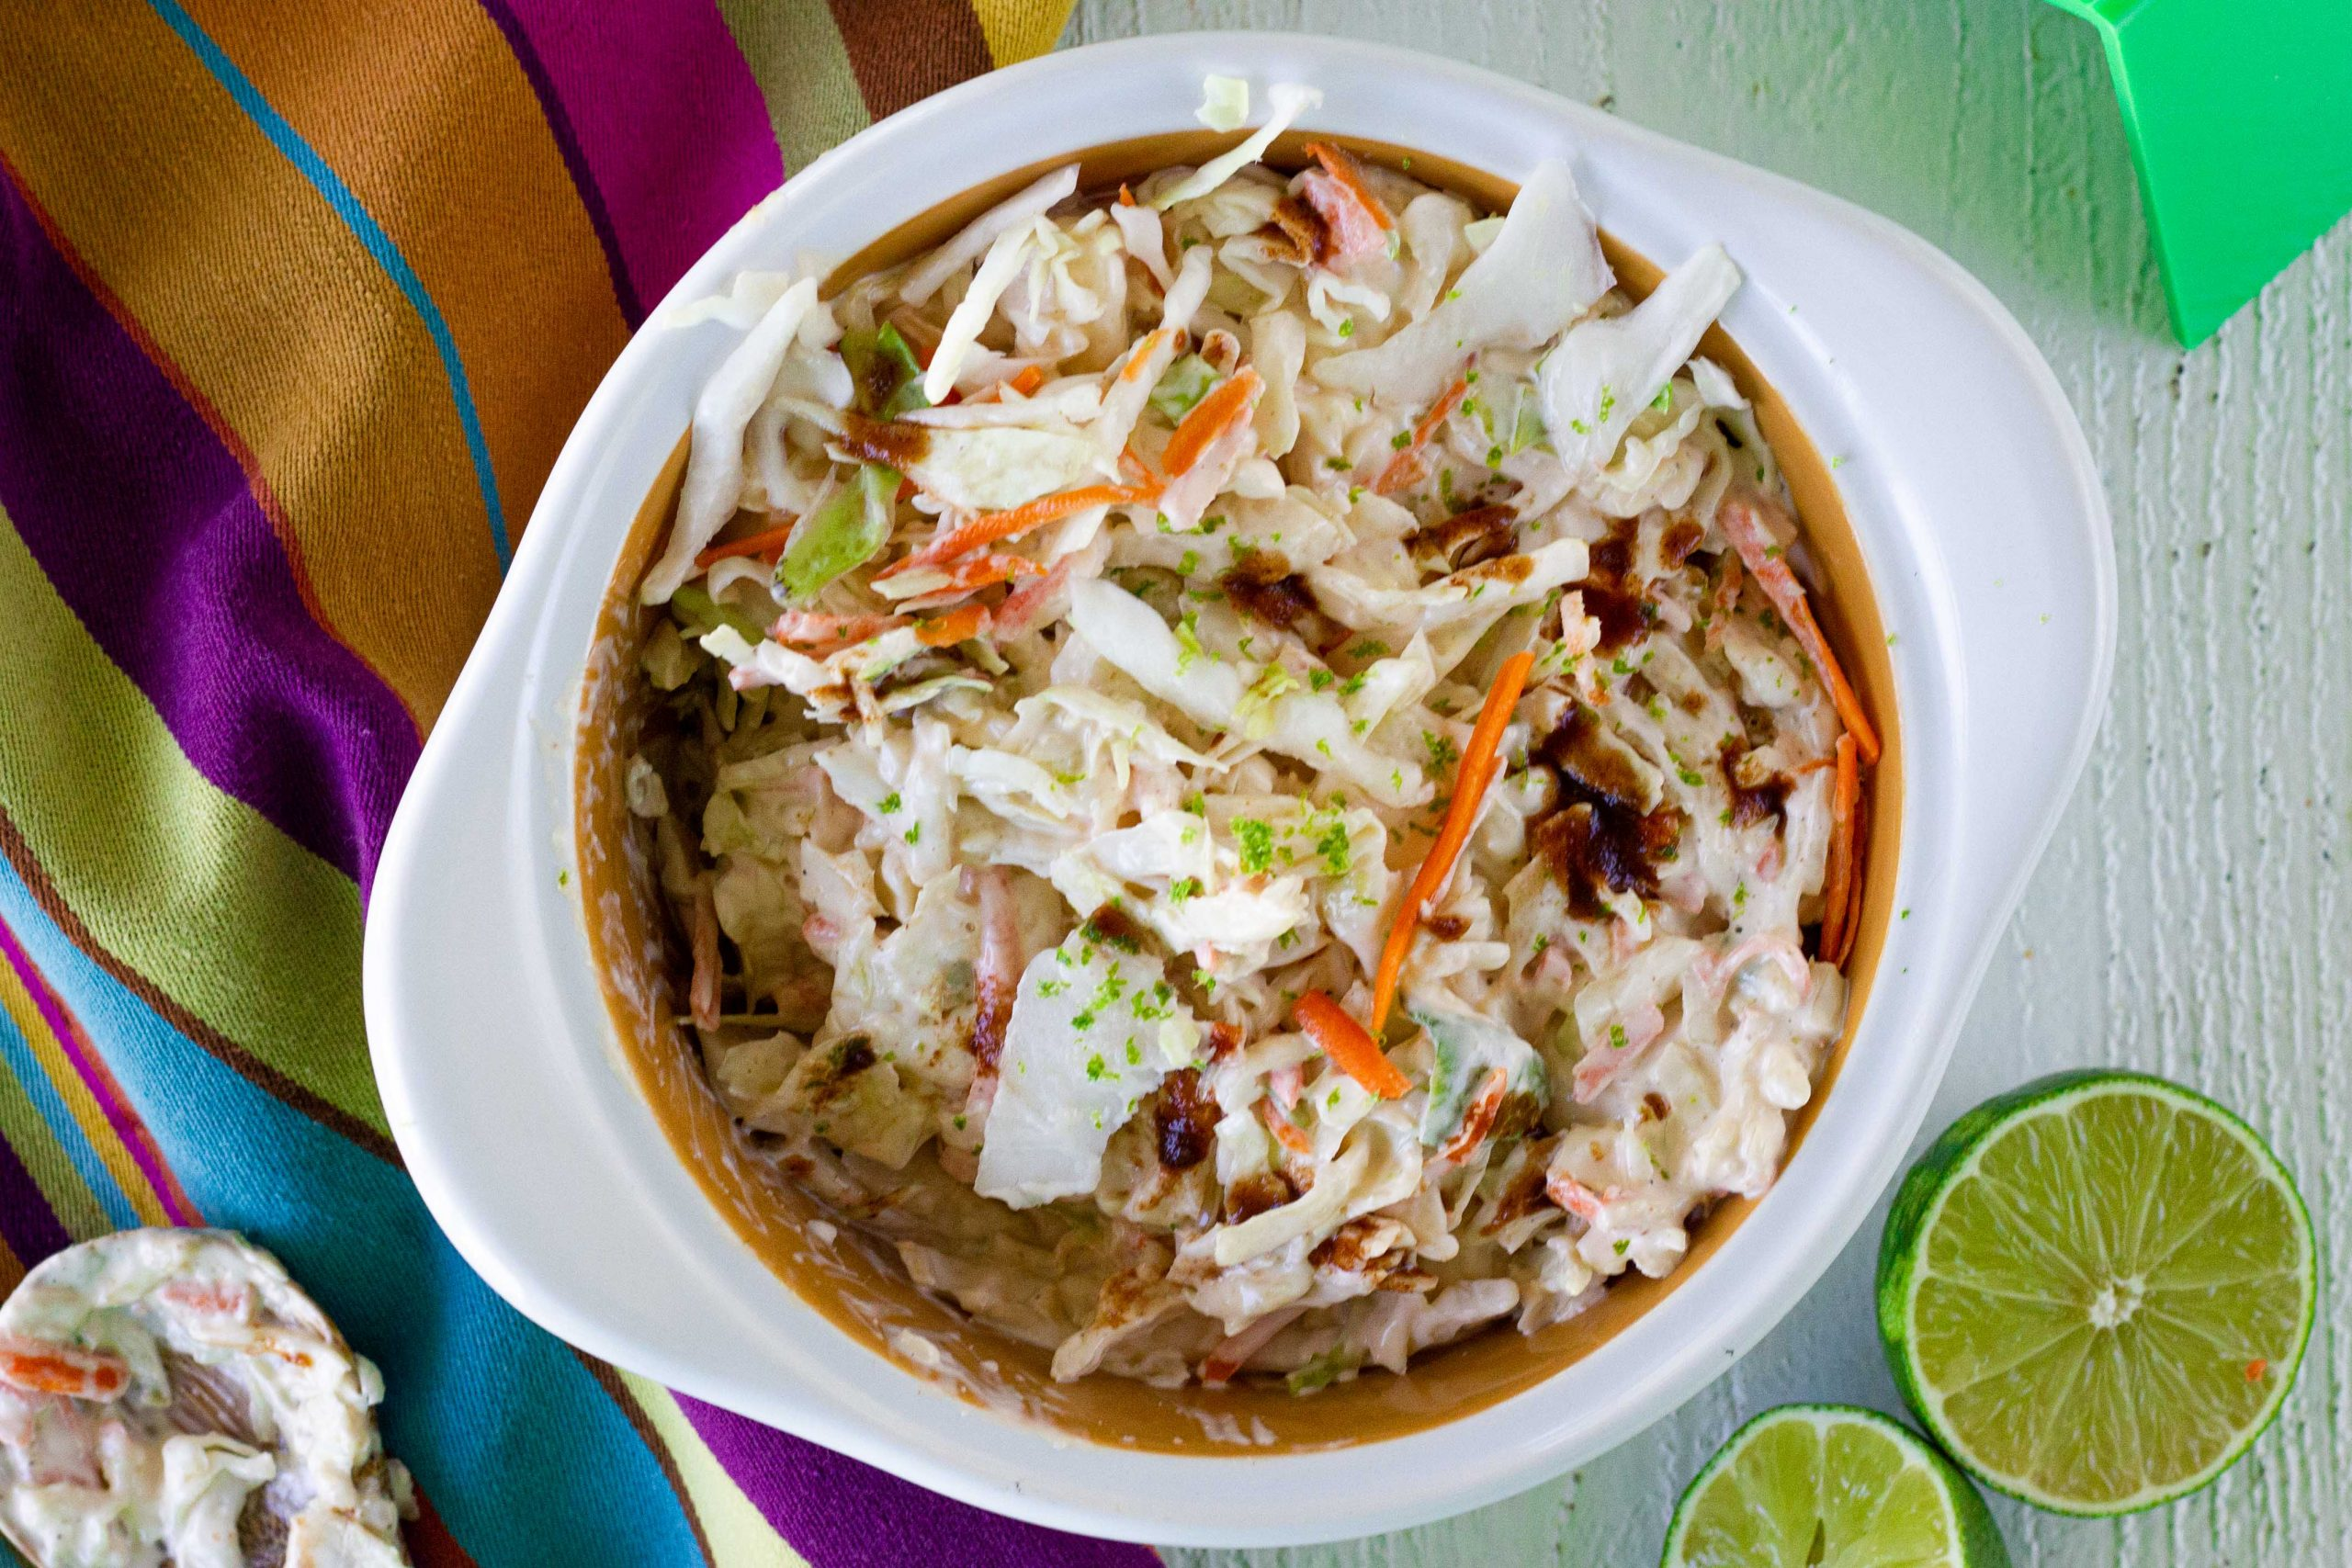 Low Carb Chipotle Lime Mexican Coleslaw